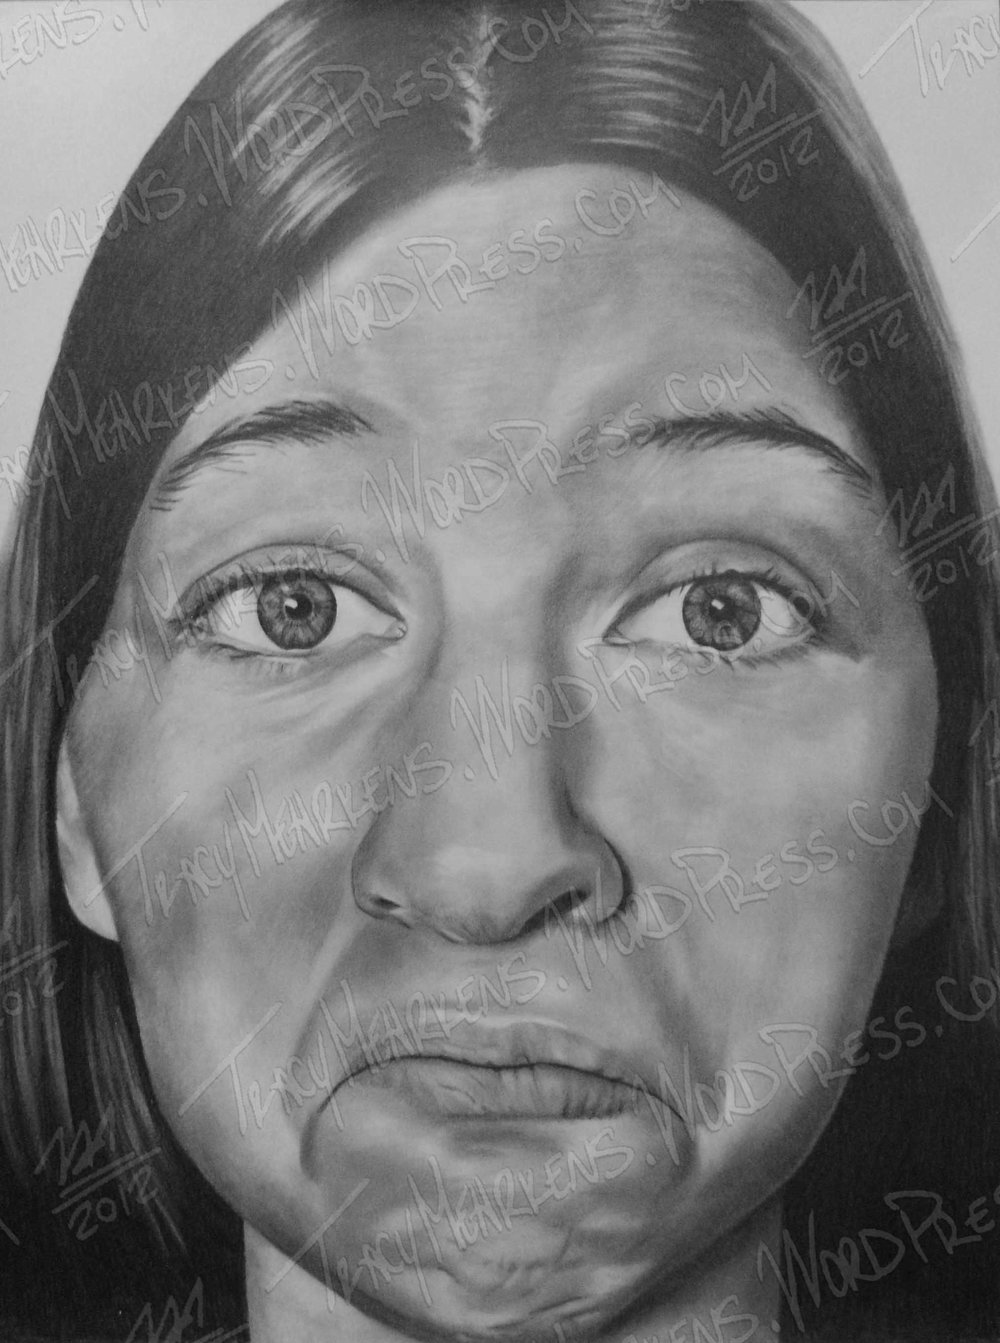 Self. Graphite on Paper. 18x24 in. 2012.